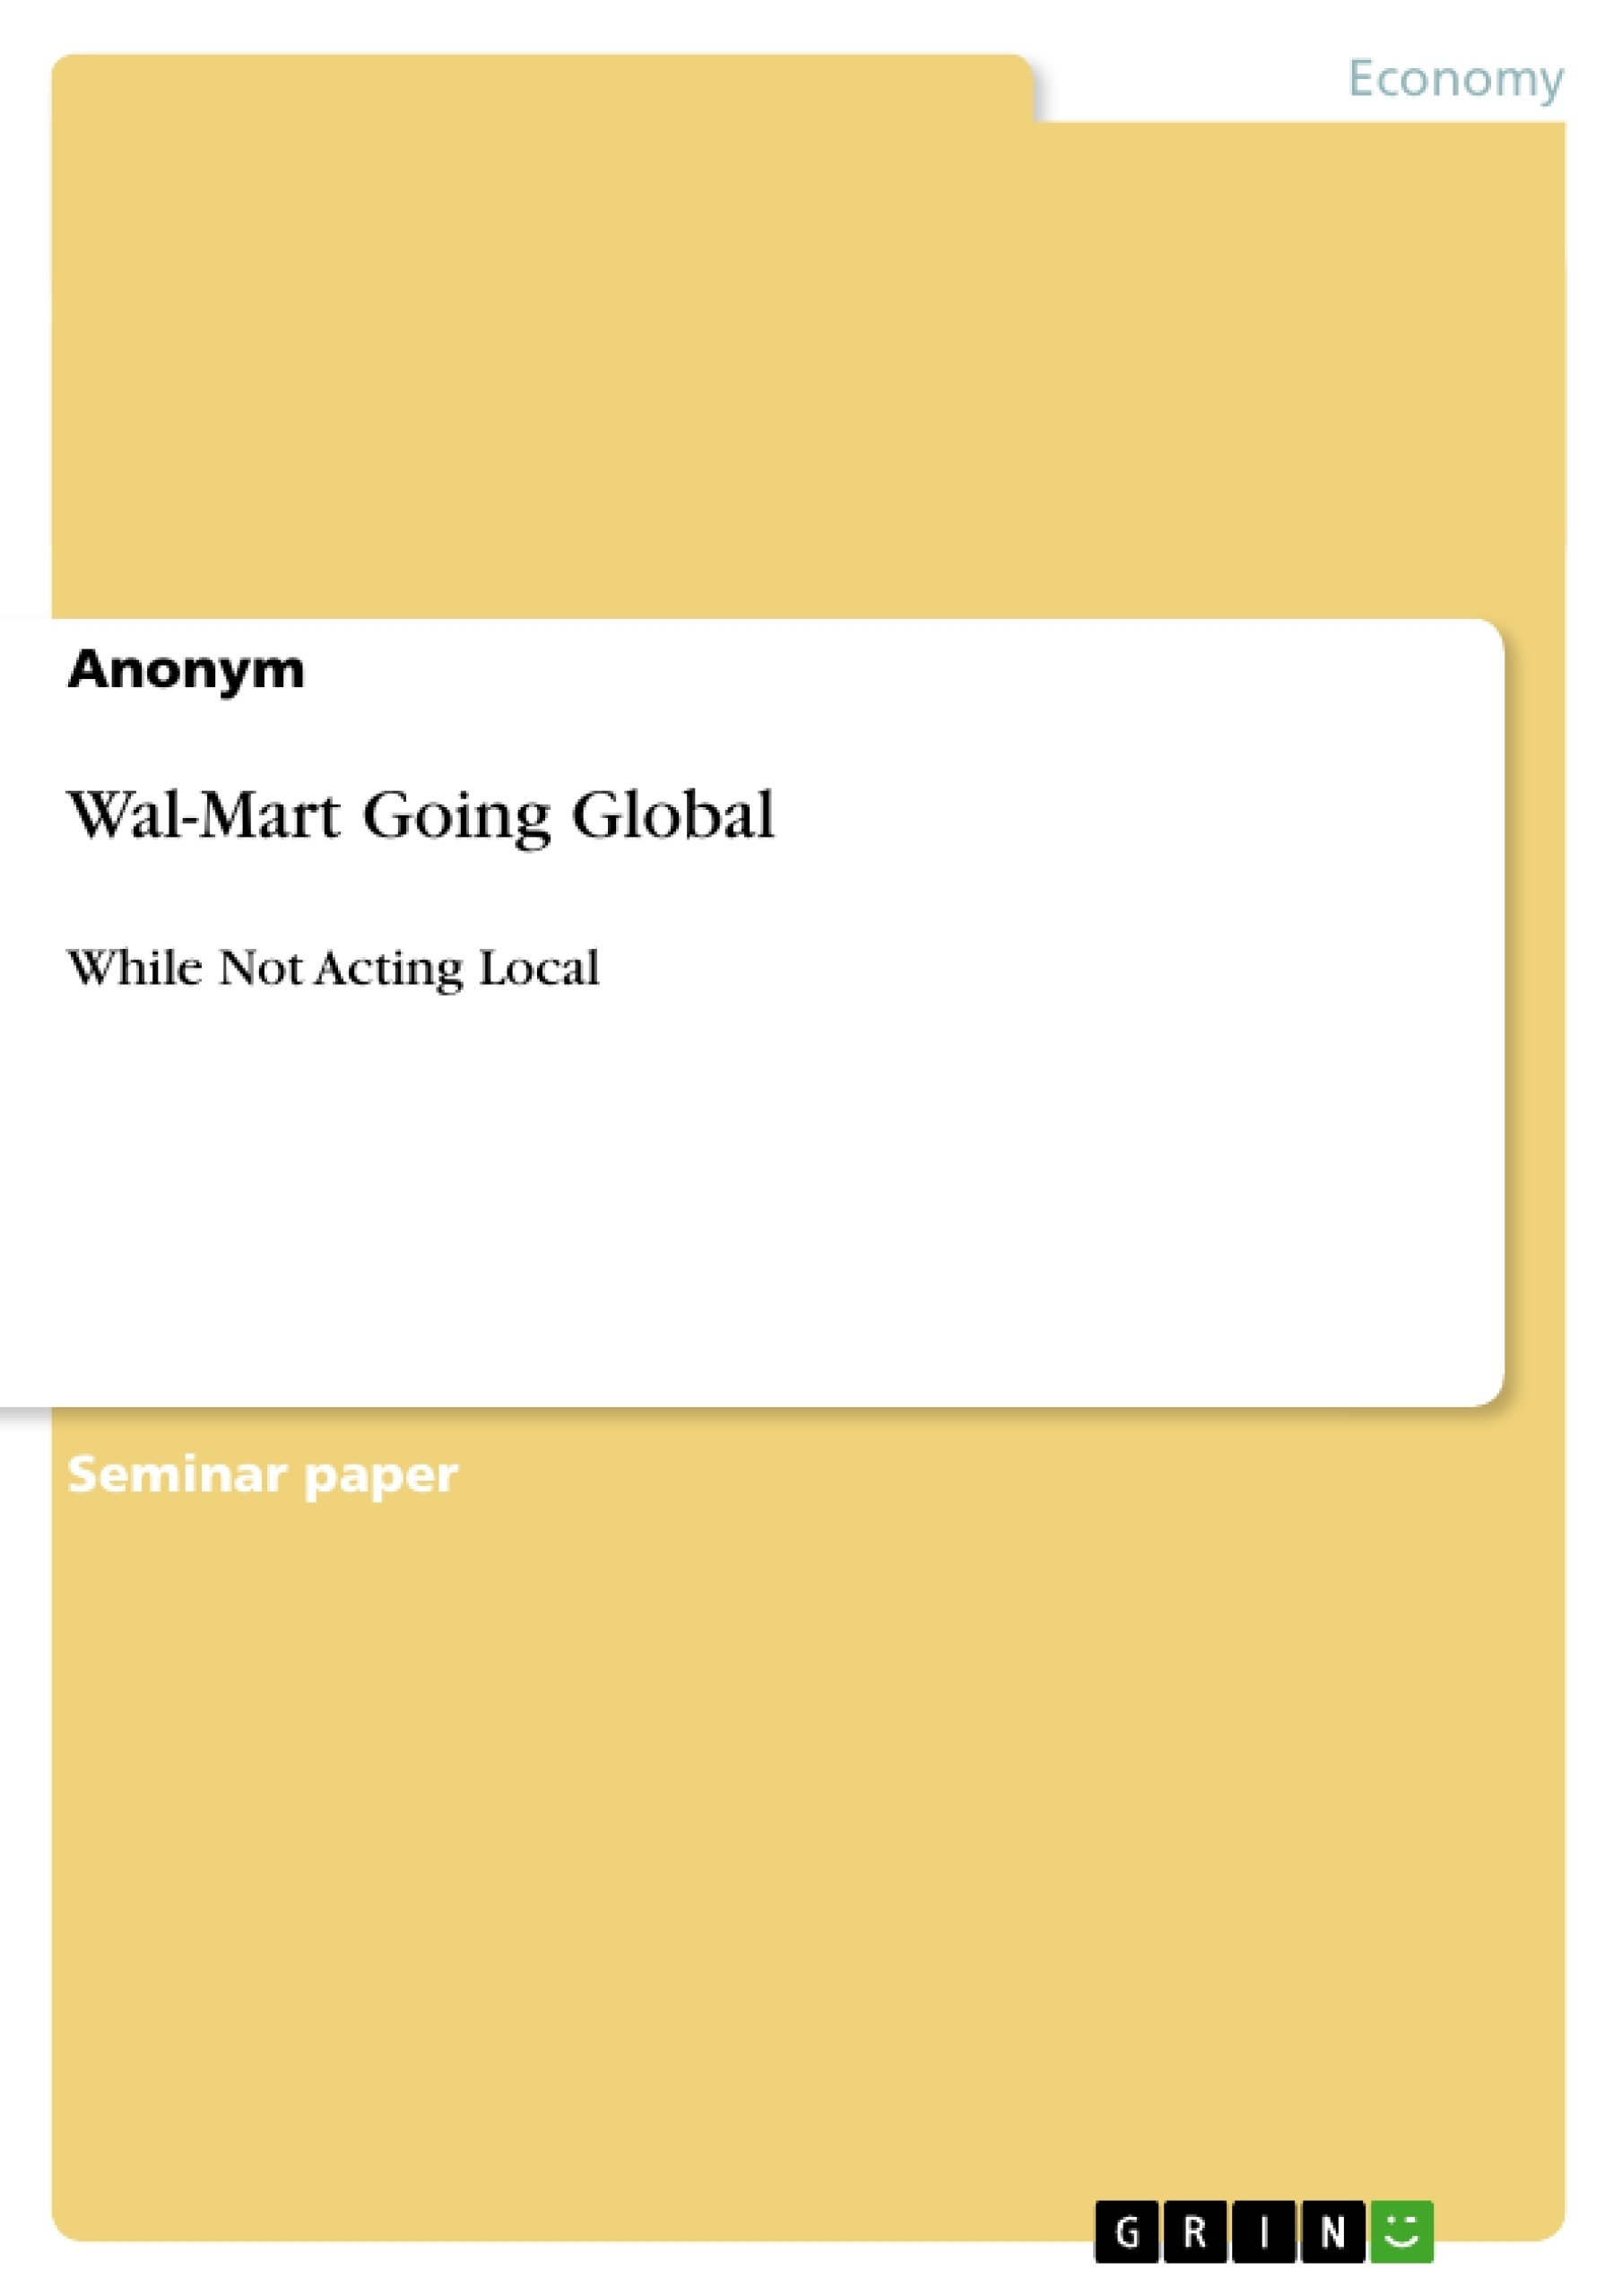 Title: Wal-Mart Going Global